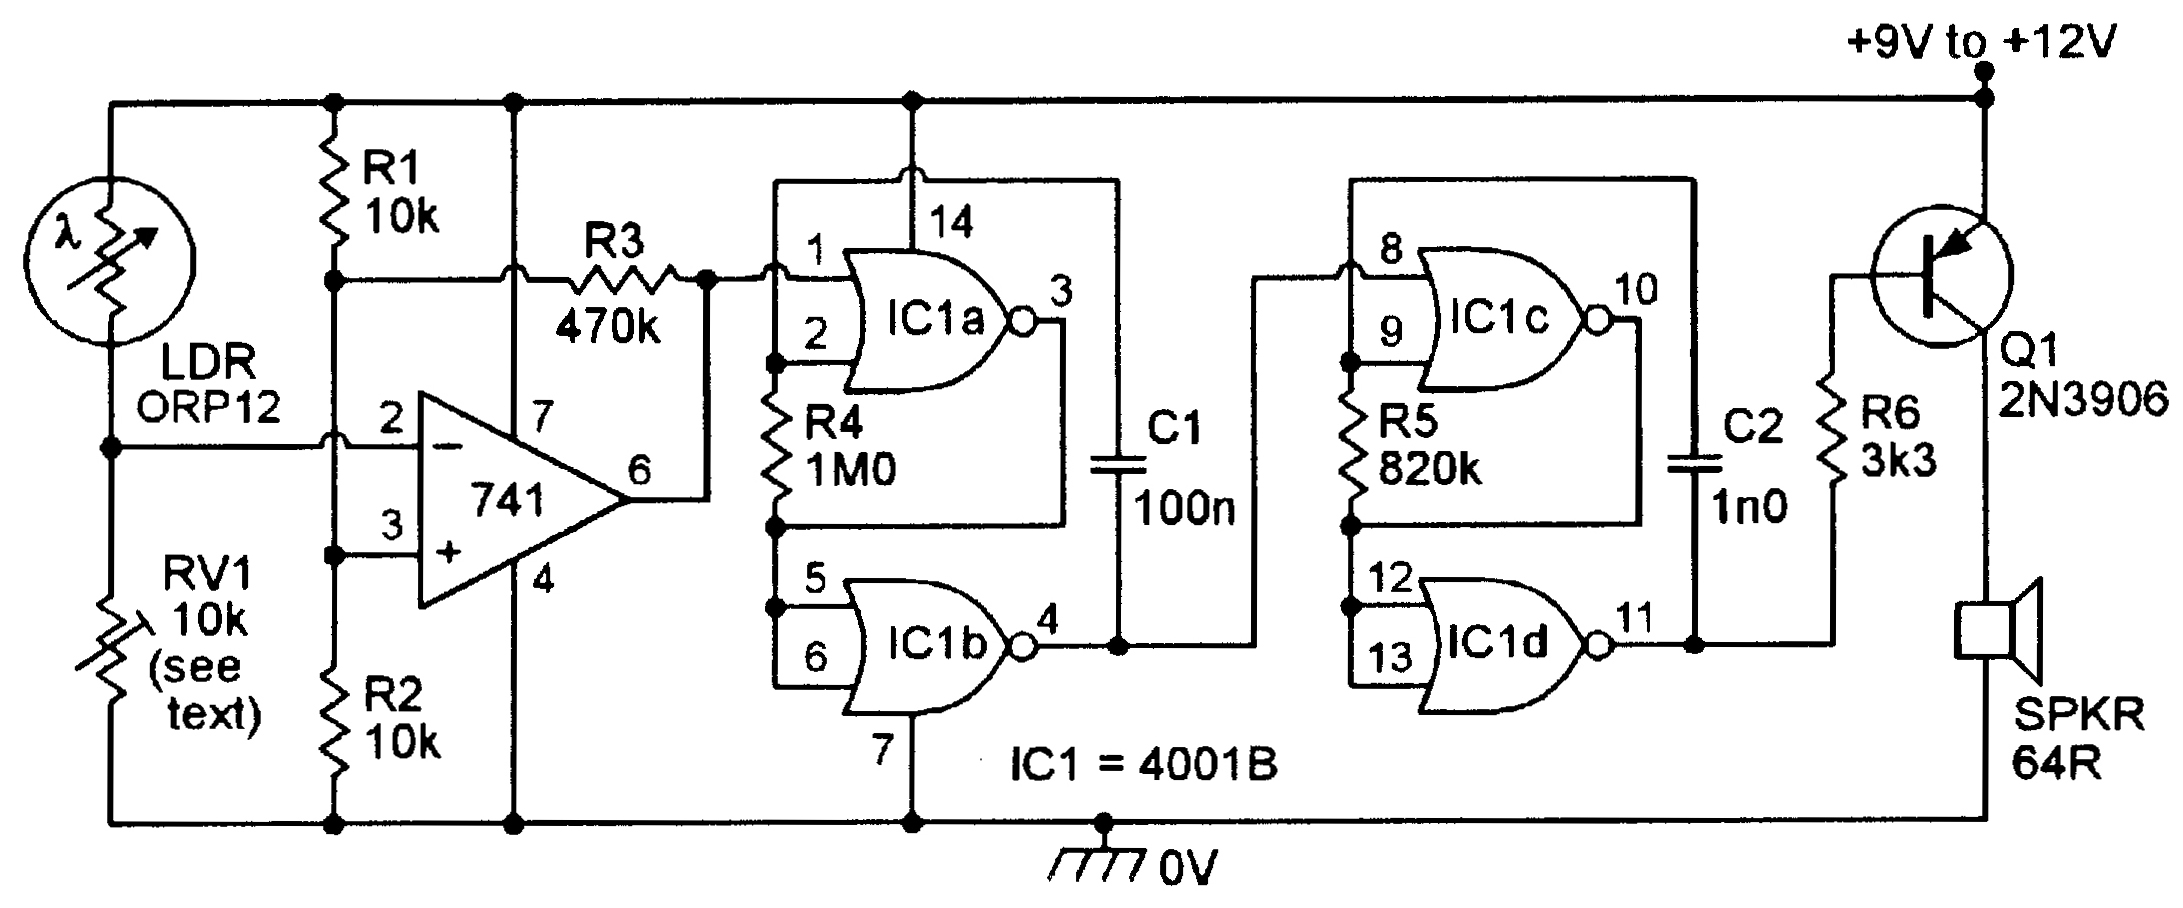 Light Sensitive Circuits Nuts Volts Magazine Current Detection Part Circuit Diagram Amplifiercircuit